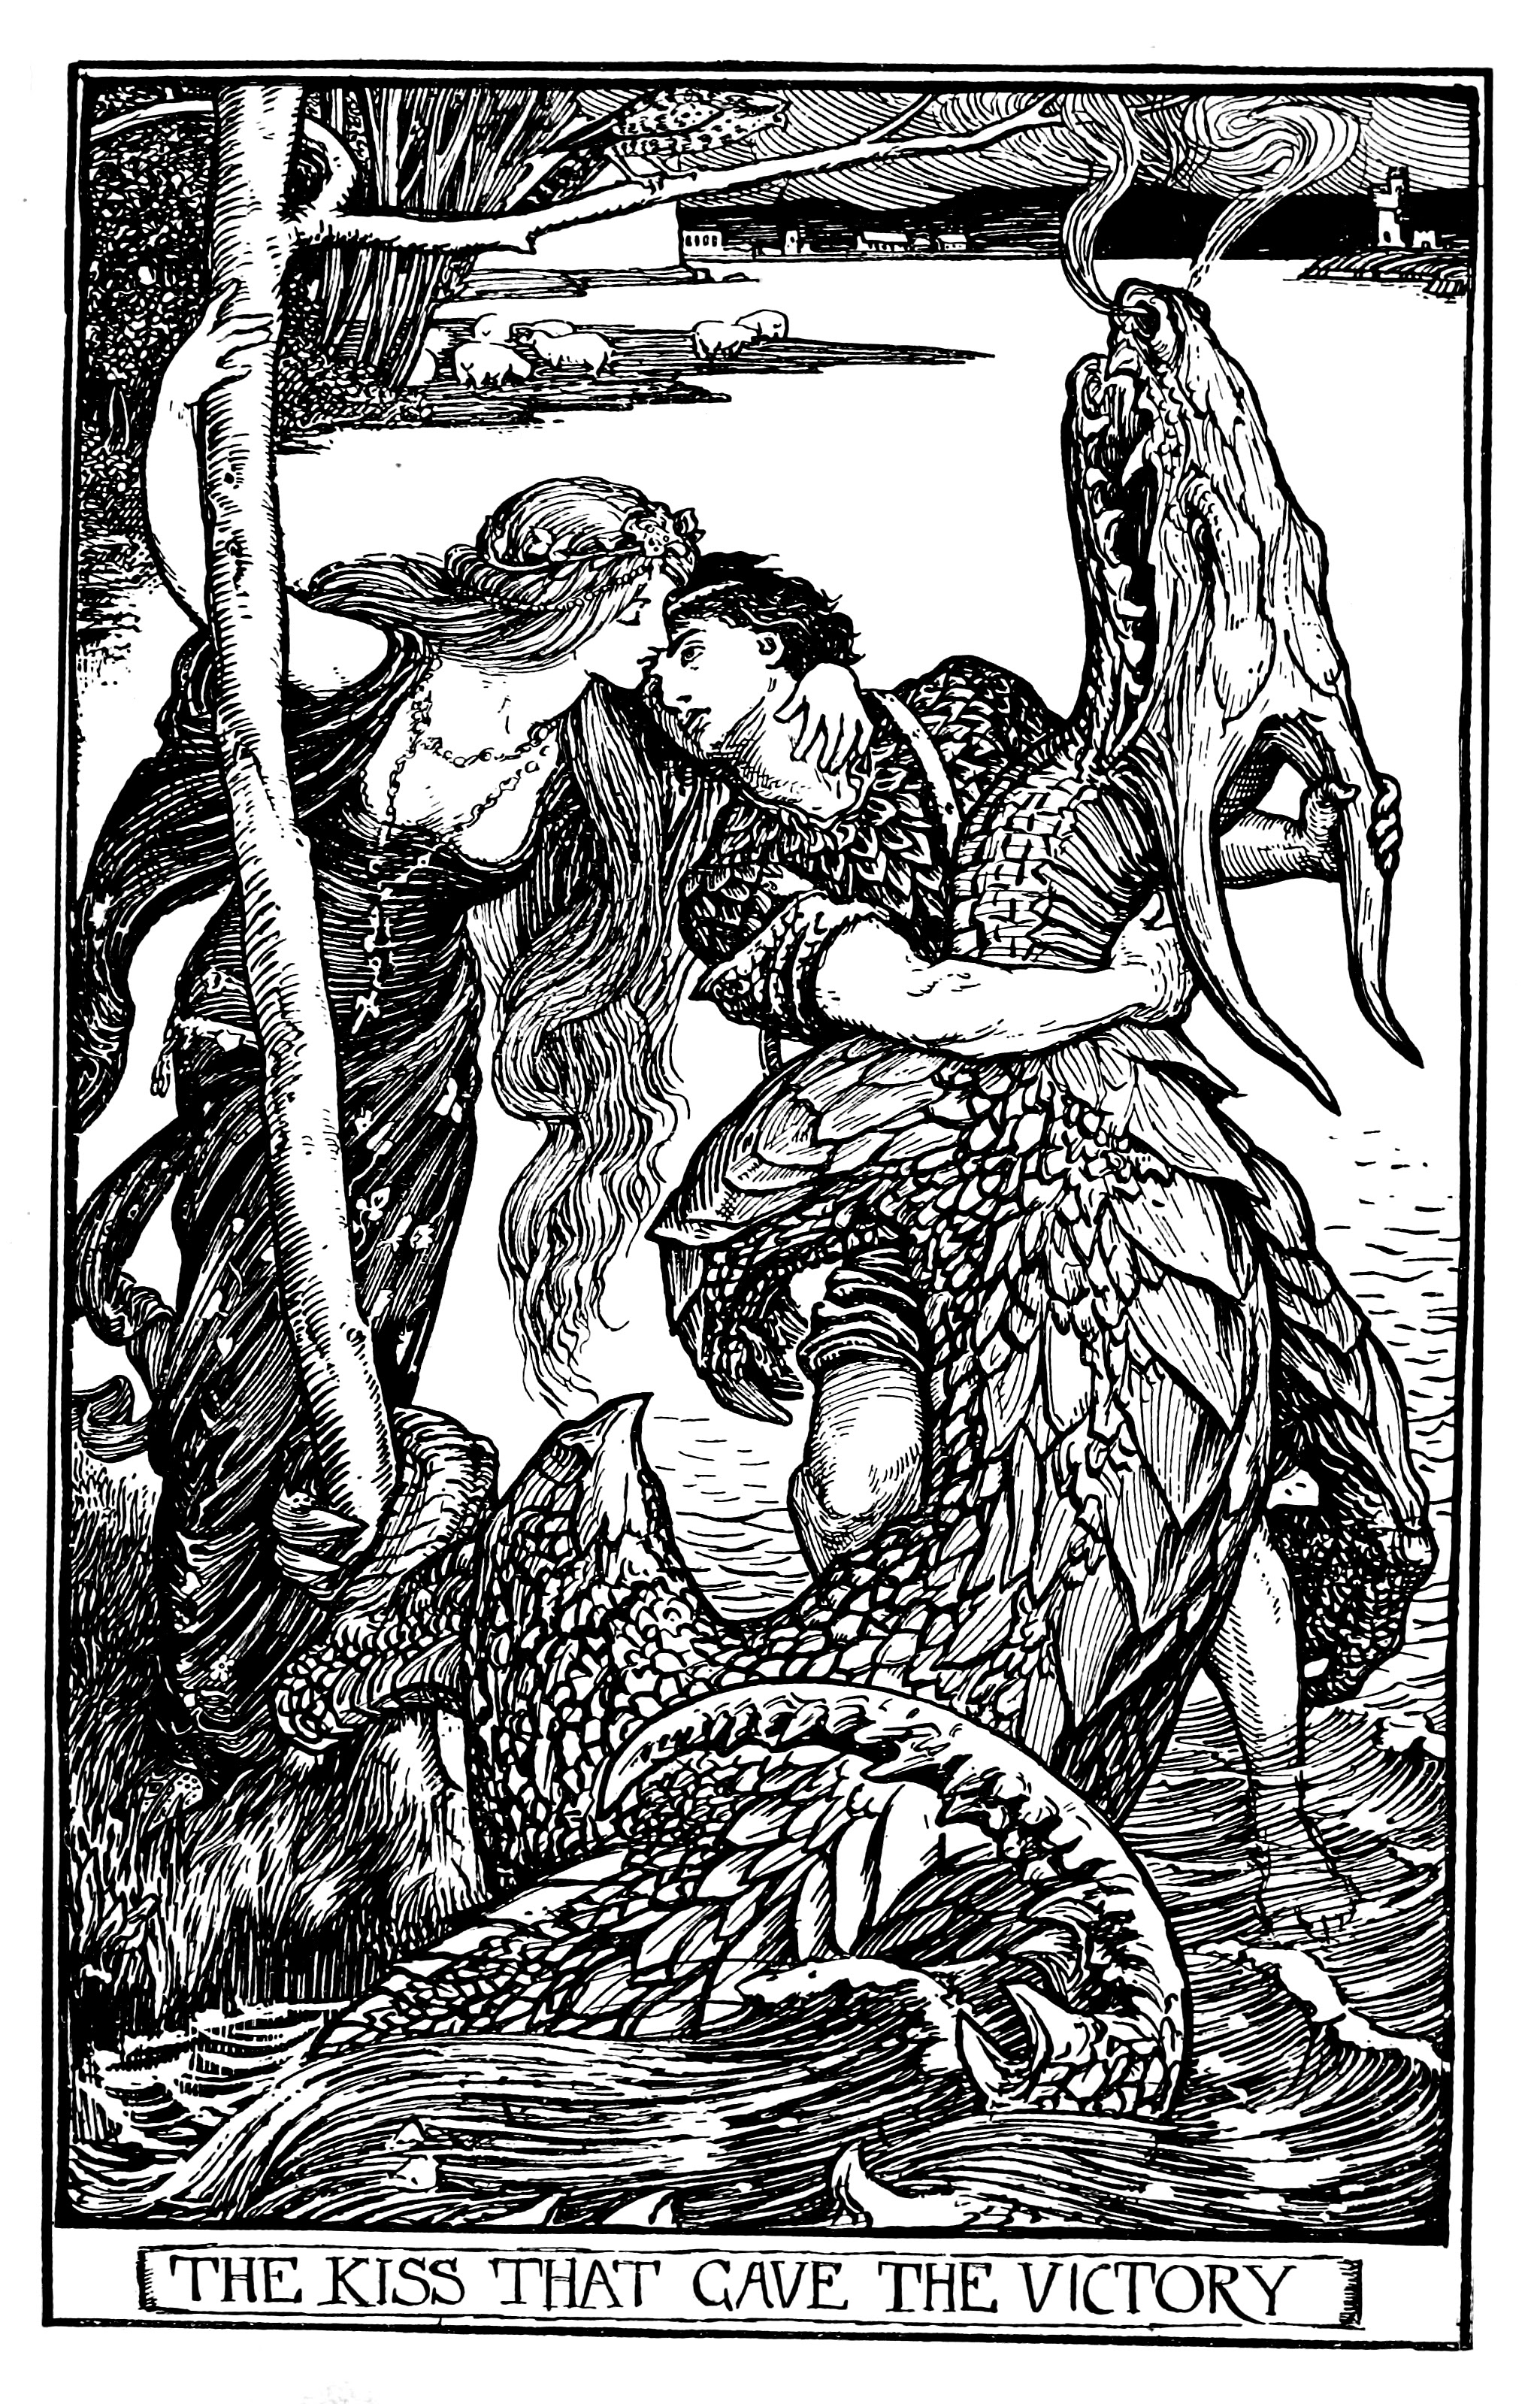 Henry Justice Ford - The crimson fairy book, edited by Andrew Lang, 1903 (illustration 5)